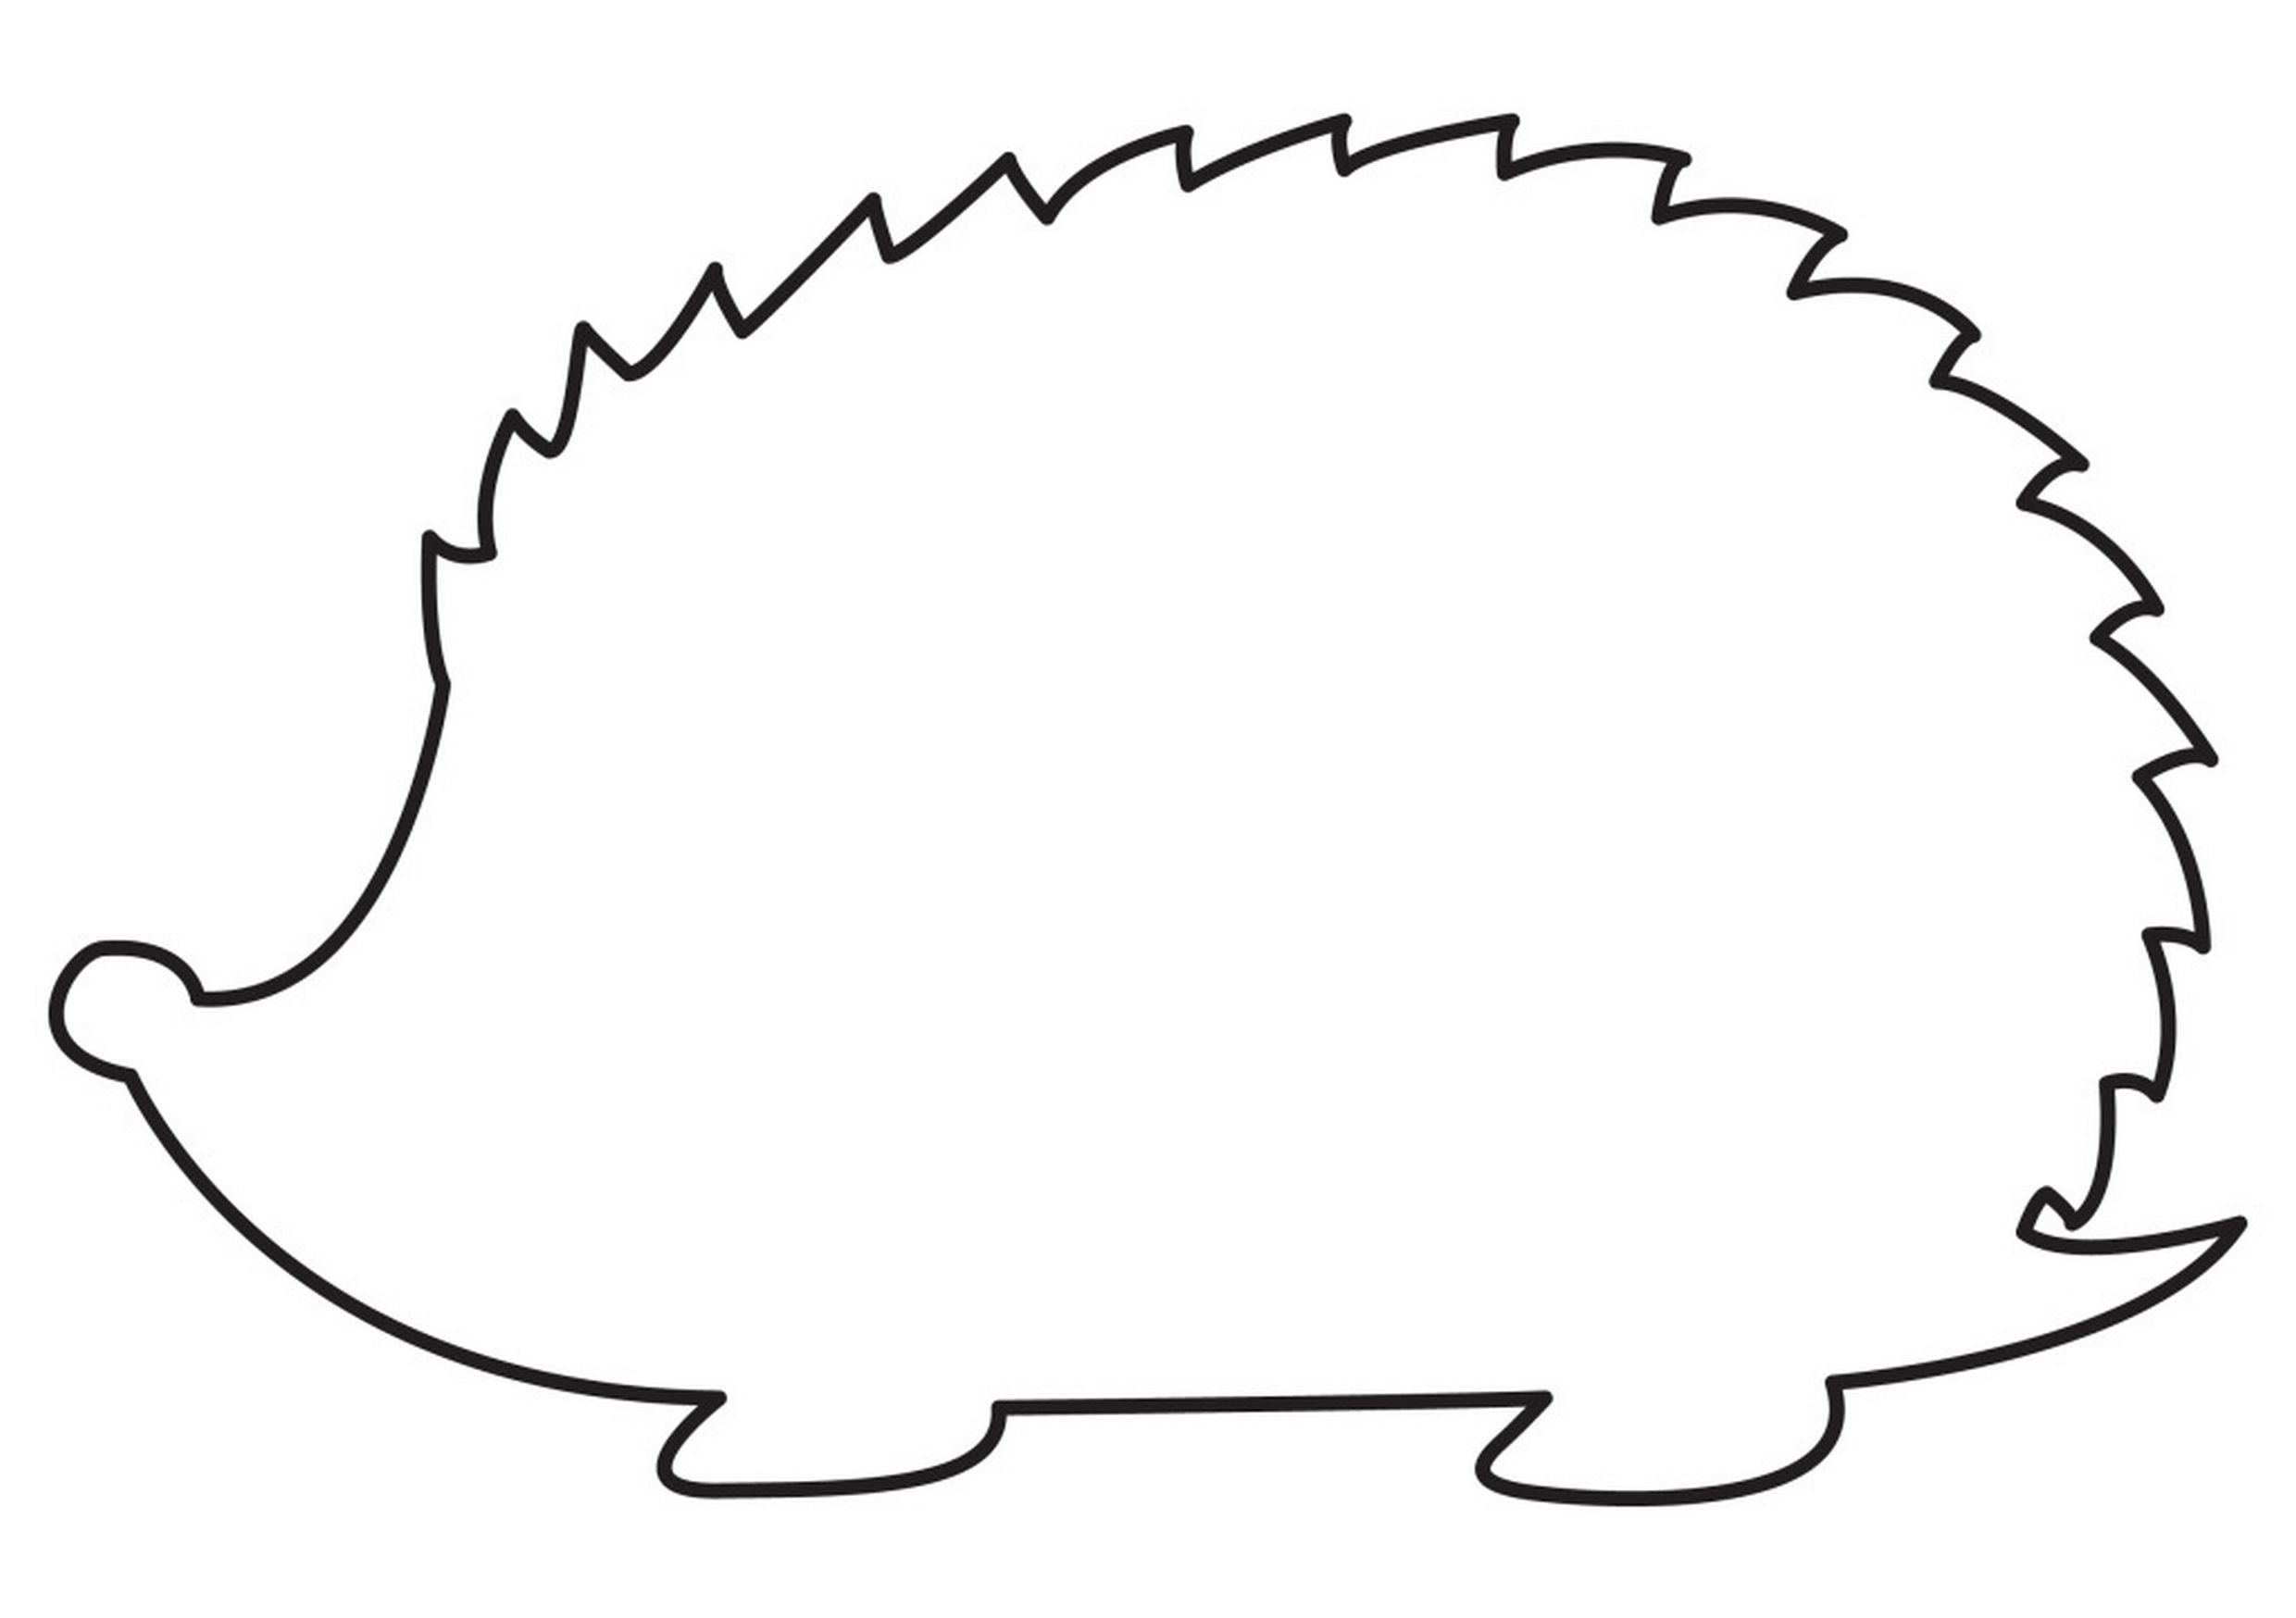 Line Drawing Hedgehog : Hedgehog template ideas crafts pinterest